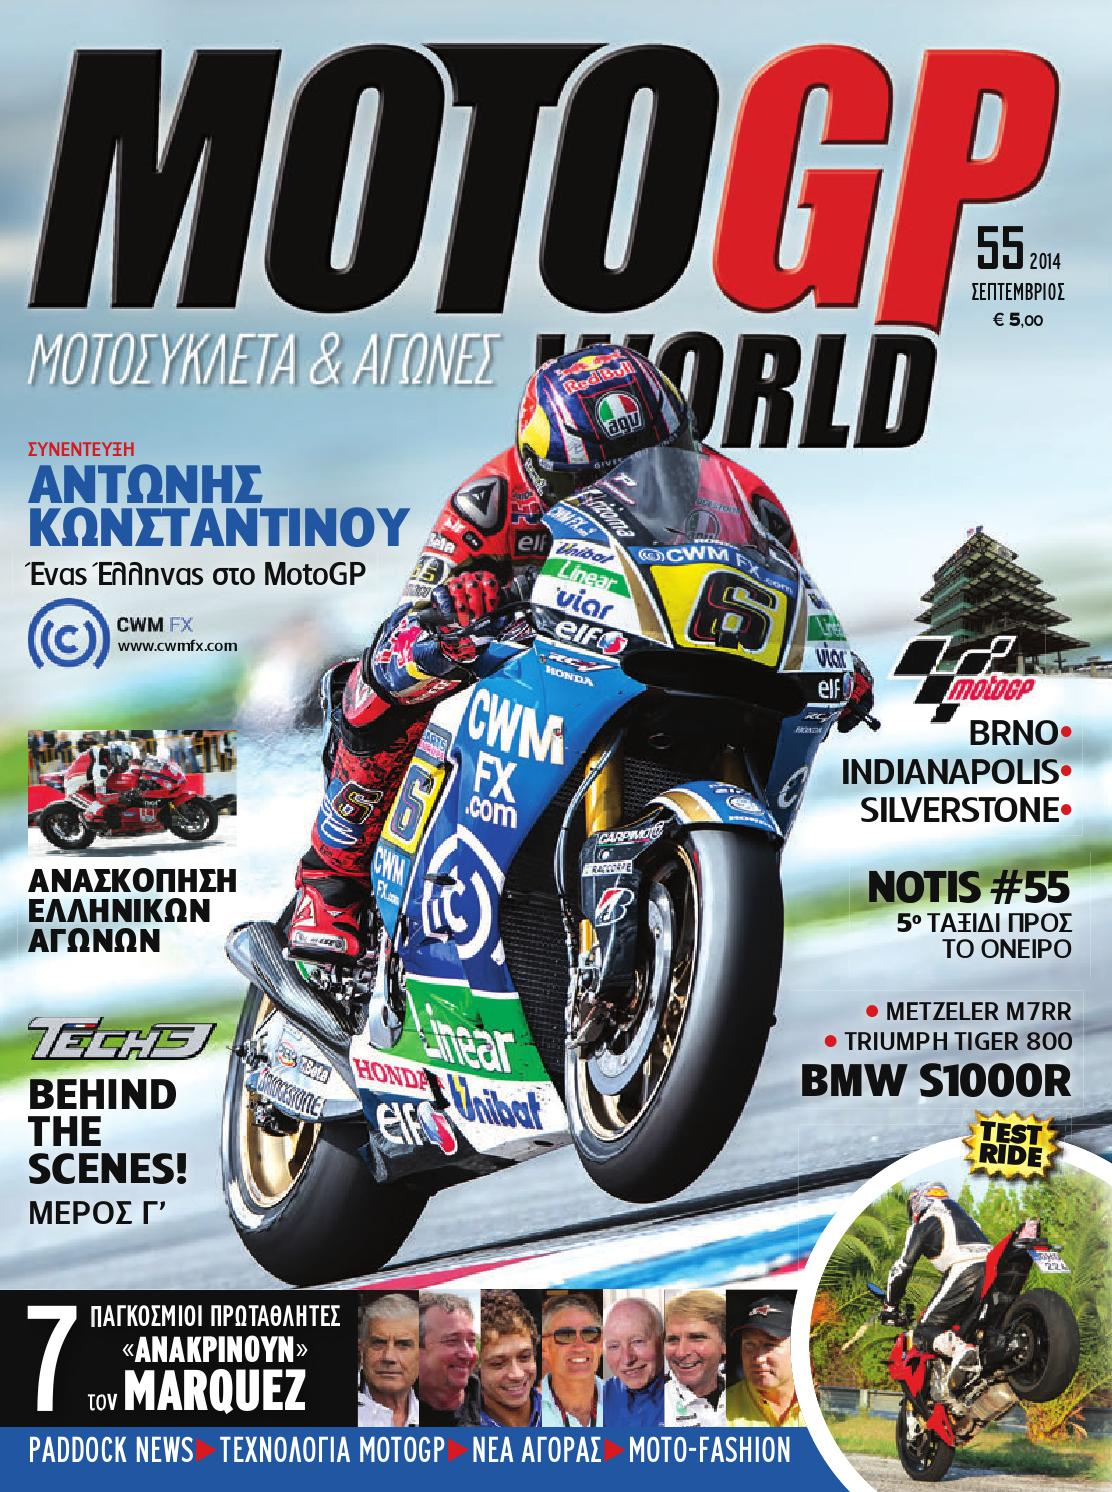 moto gp world 55 by motogp world magazine issuu. Black Bedroom Furniture Sets. Home Design Ideas